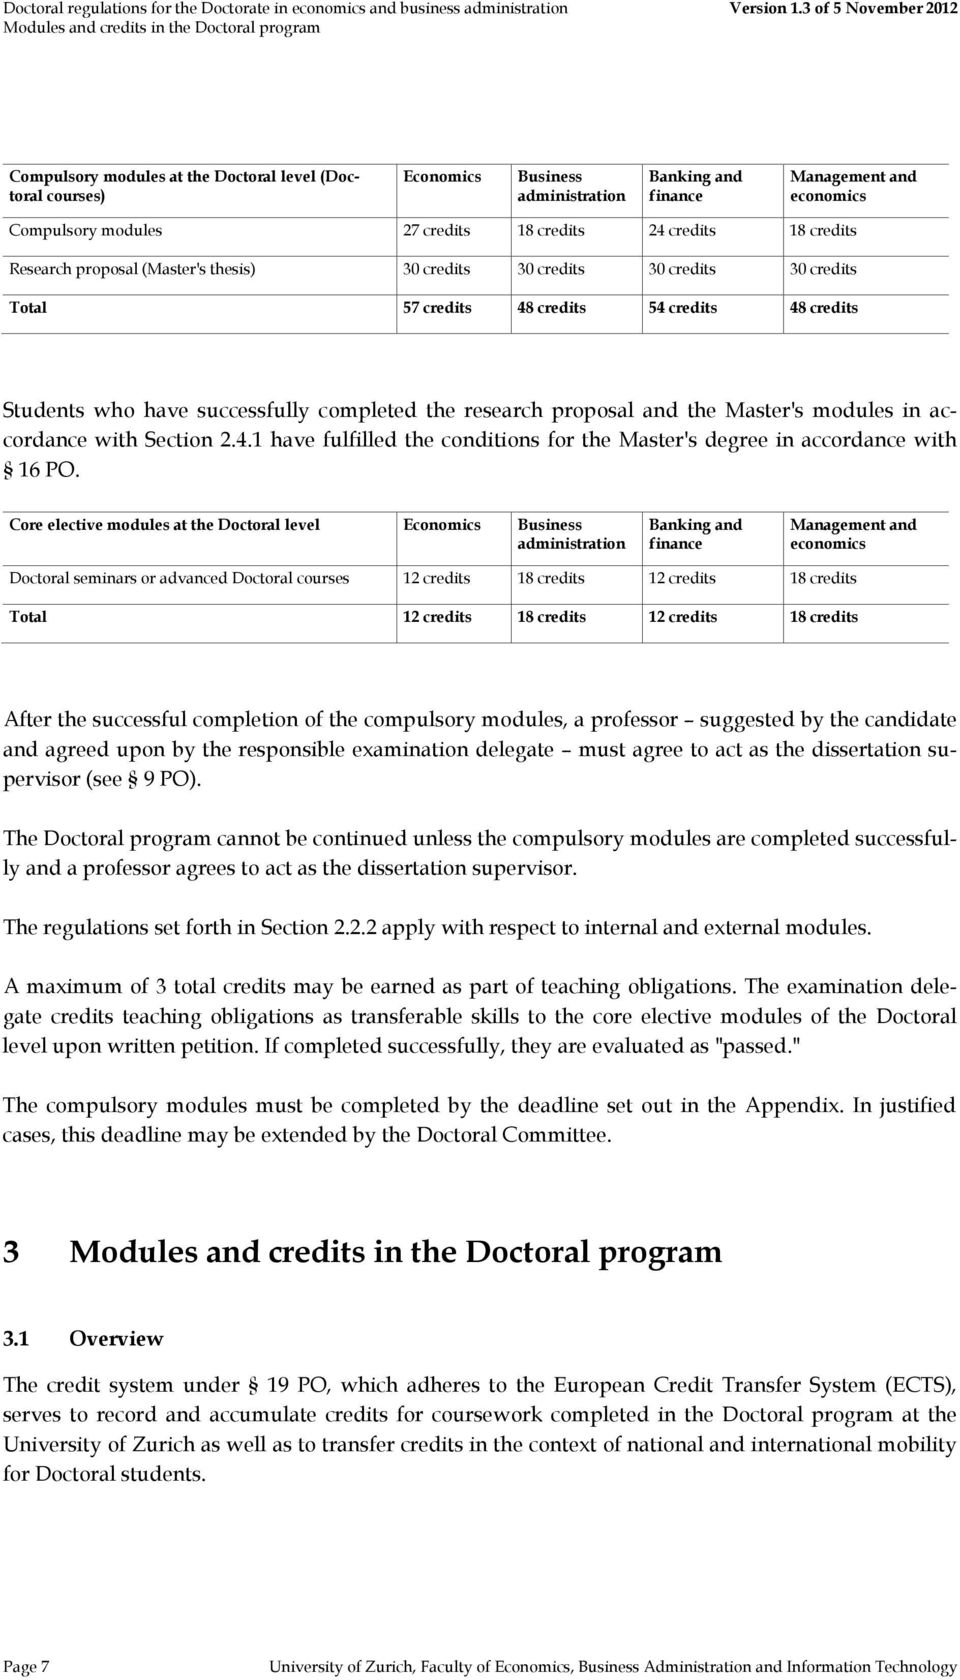 successfully completed the research proposal and the Master's modules in accordance with Section 2.4.1 have fulfilled the conditions for the Master's degree in accordance with 16 PO.